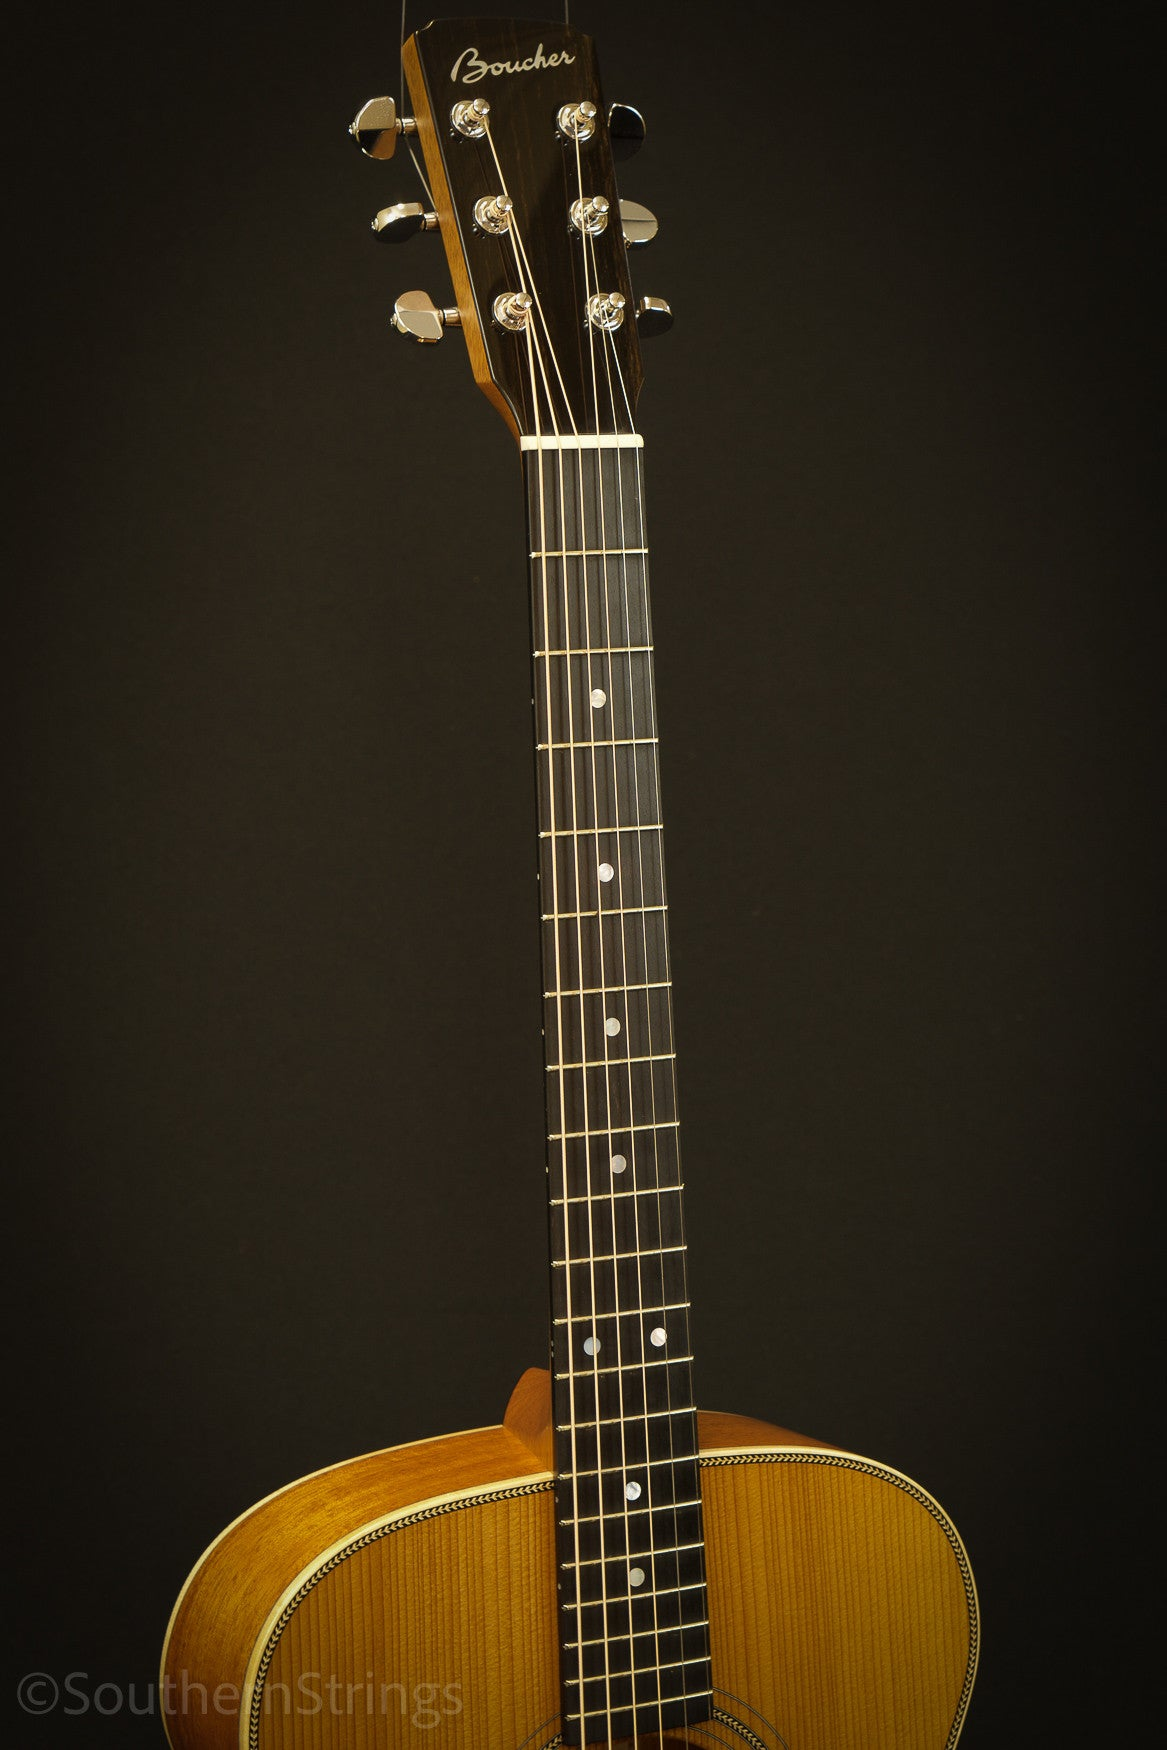 Boucher Mahogany Studio Goose OM Hybrid with Gold Touch